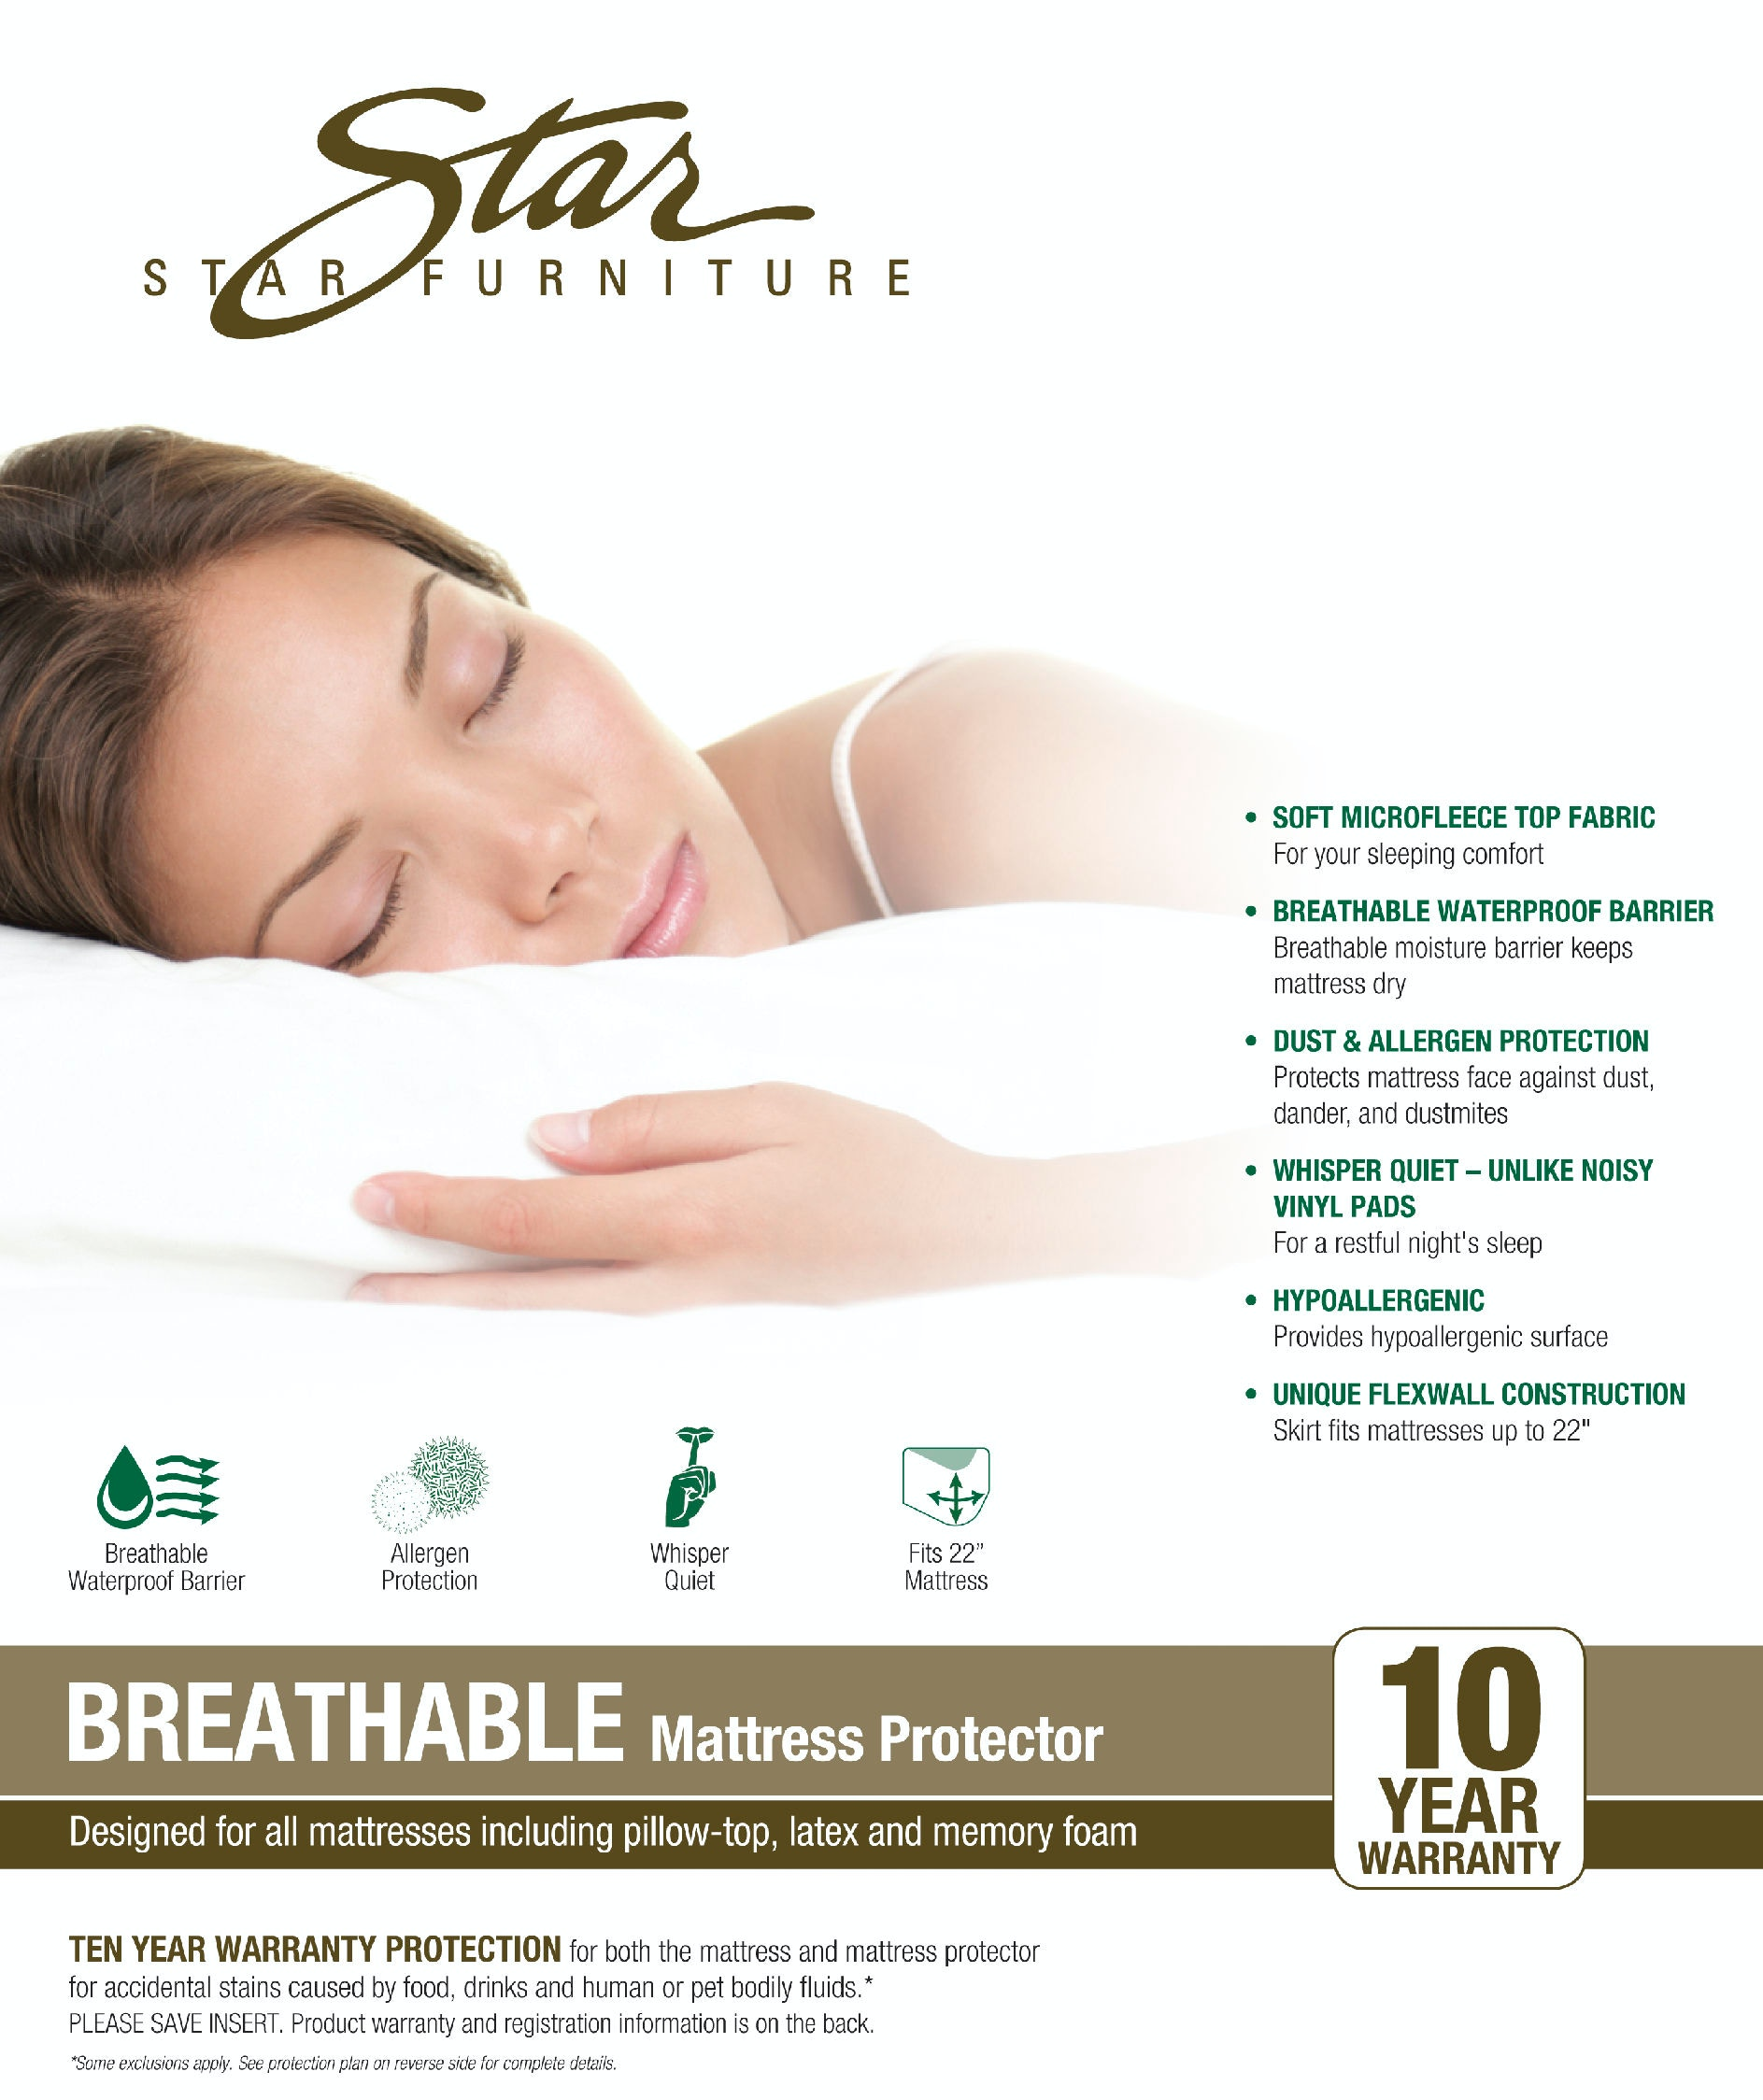 Bedroom Star Furniture Breathable Mattress Protector